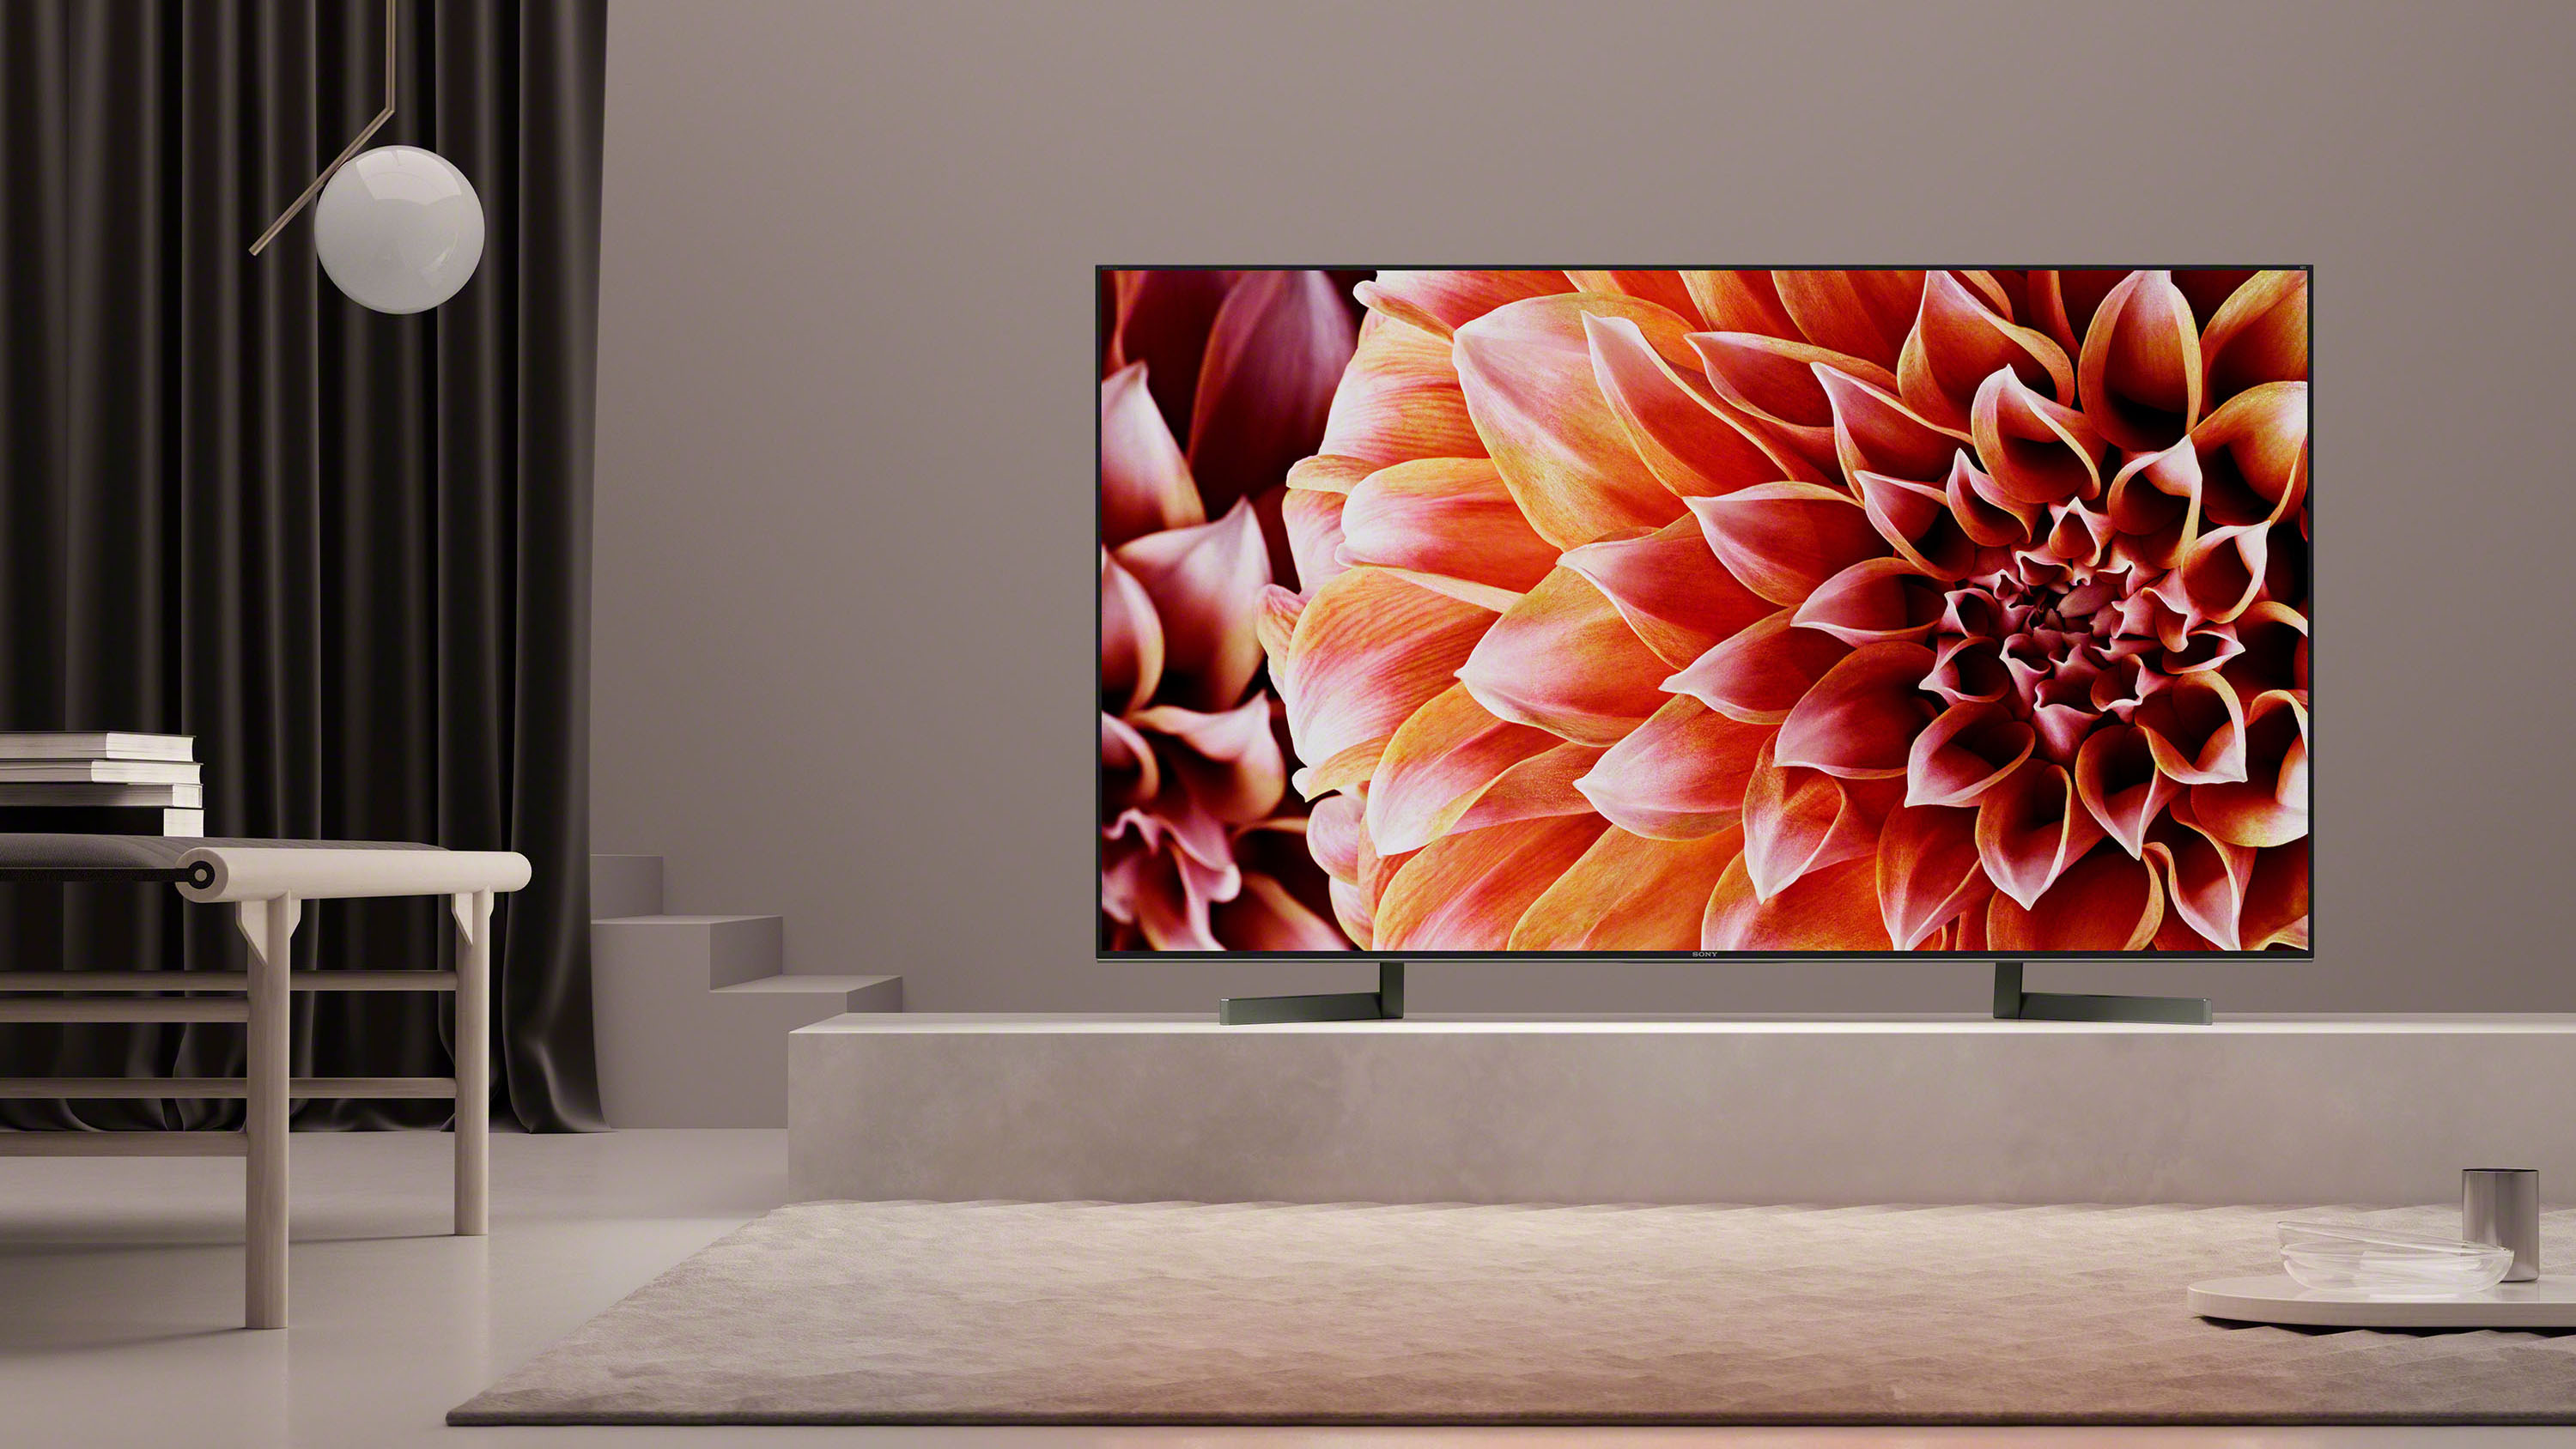 Sony XF90 Series 4K TV